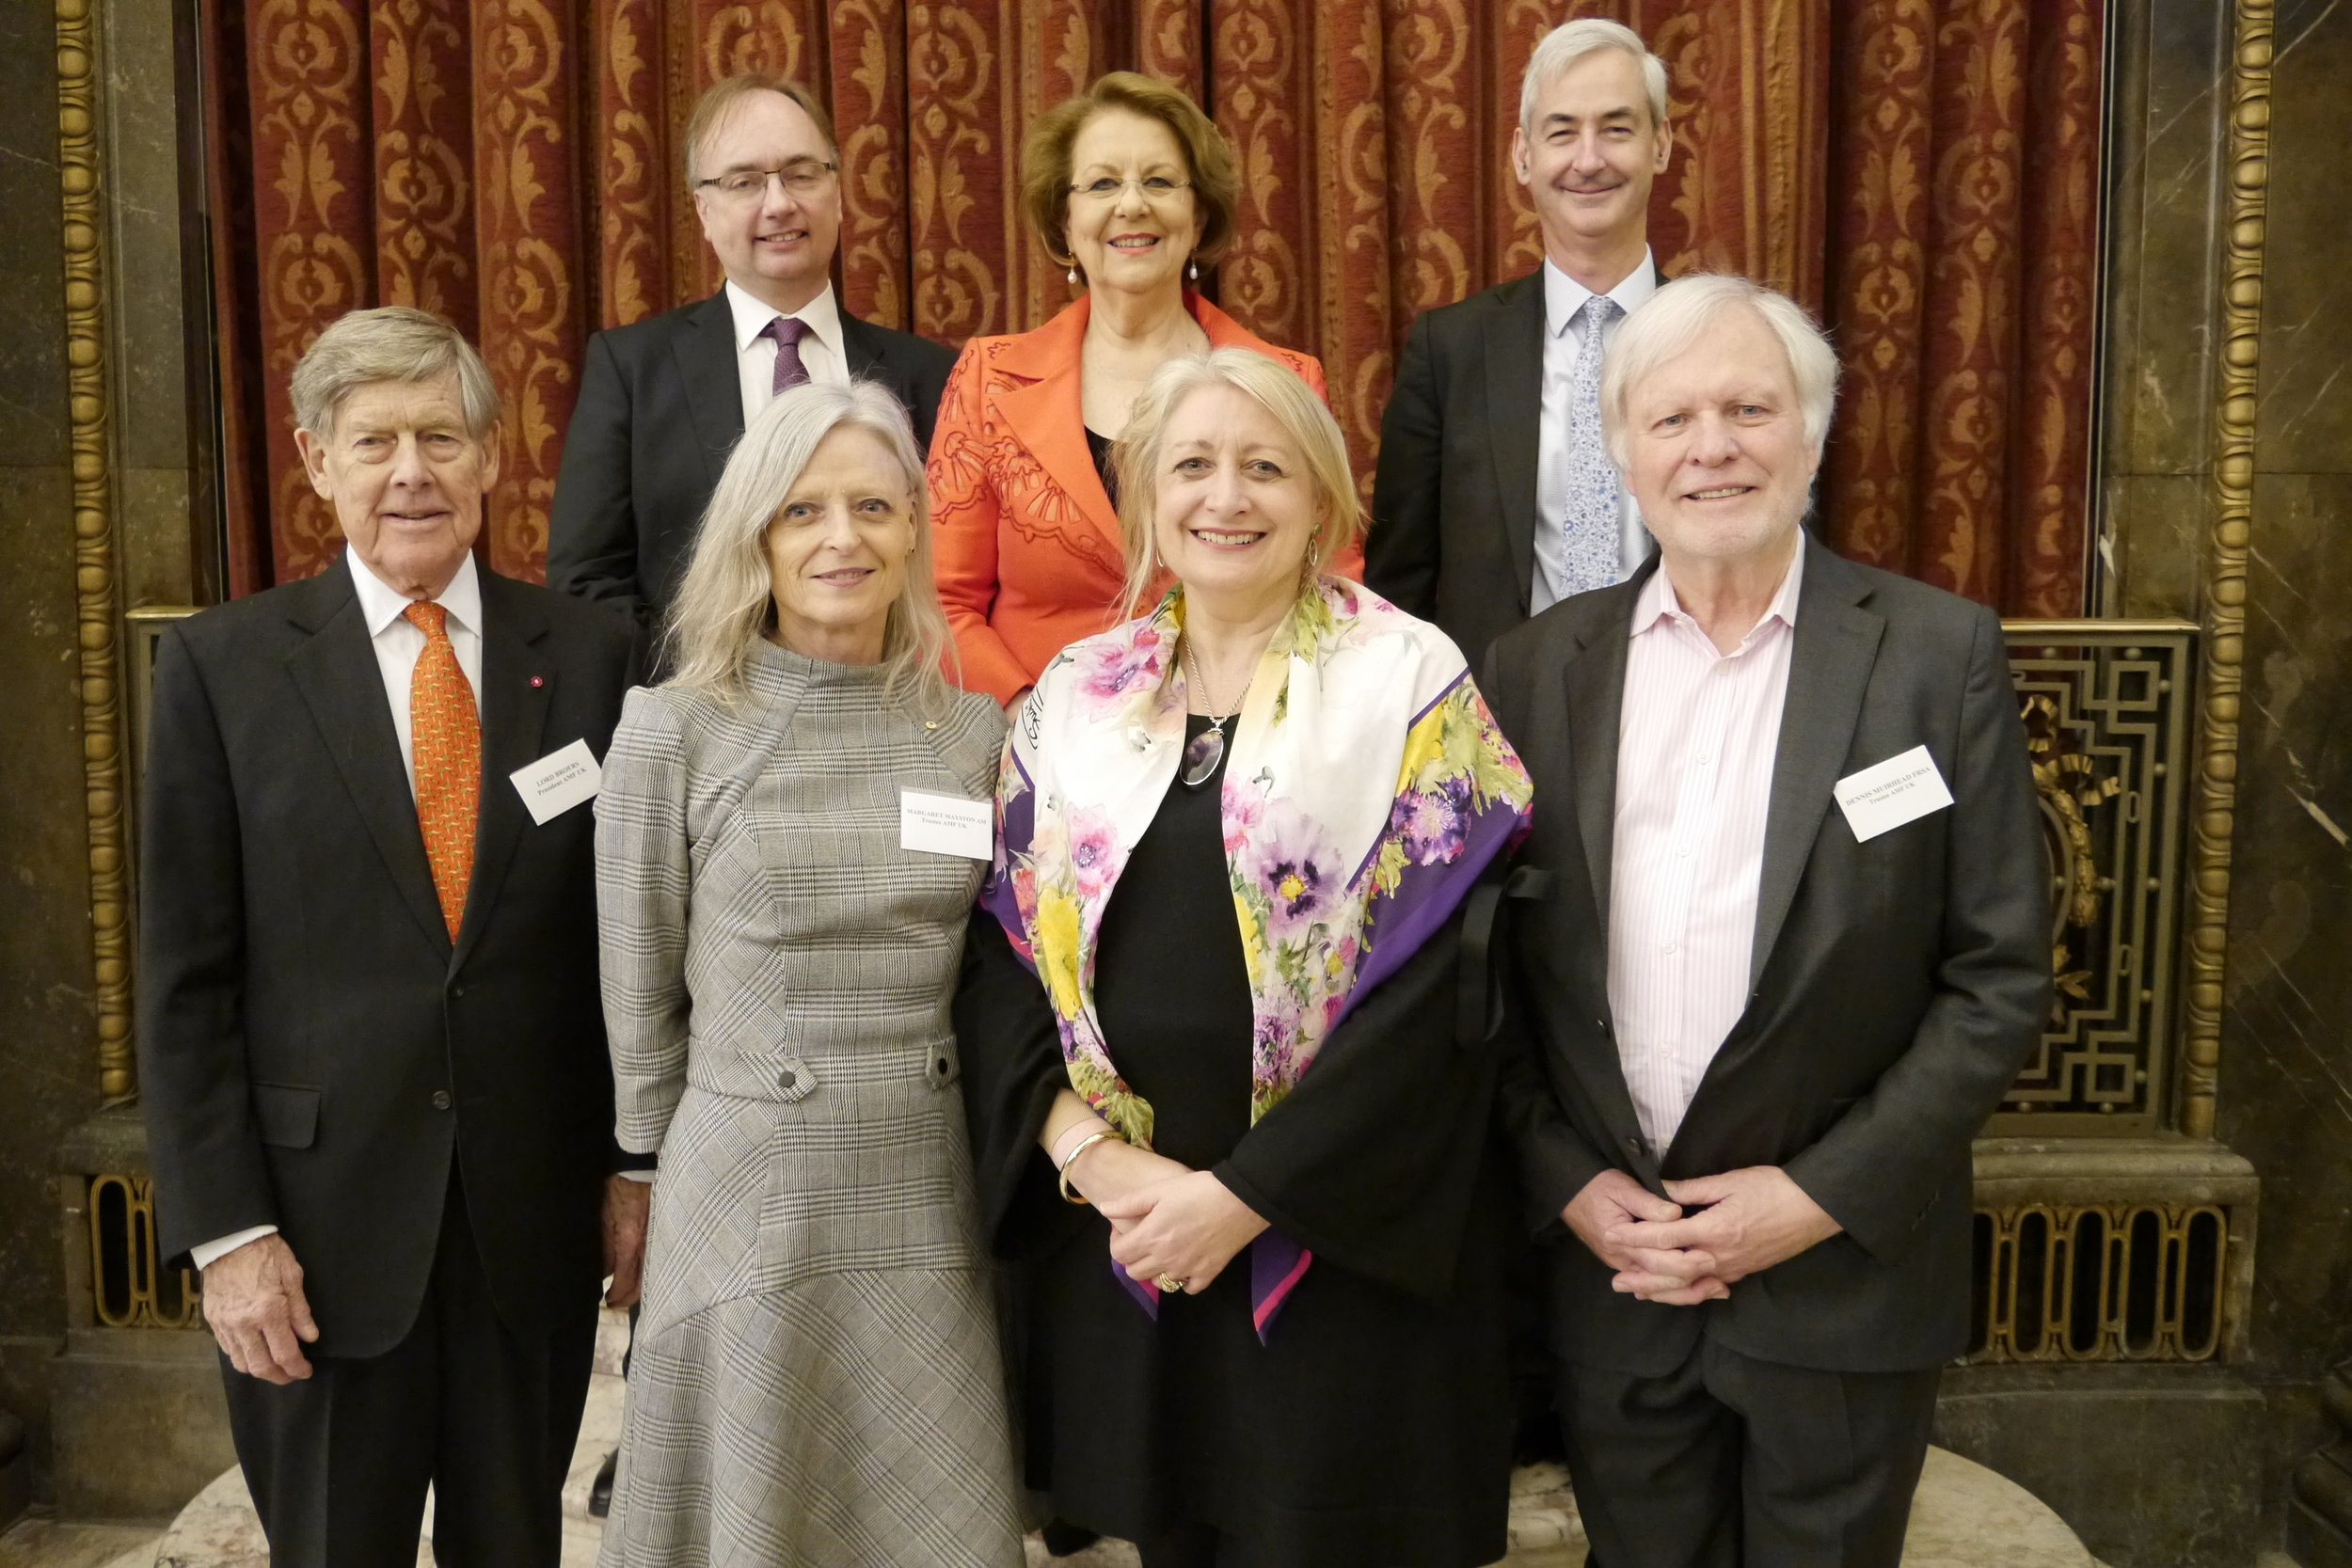 AMF Trustees at the Spring Showcase, March 2019. Back Row L to R: Marcus Cox, Yvonne Kenny AM, James Pitman, Front Row: Lord Broers, Margaret Mayston AM, Ruth Cornett, Dennis Muirhead.